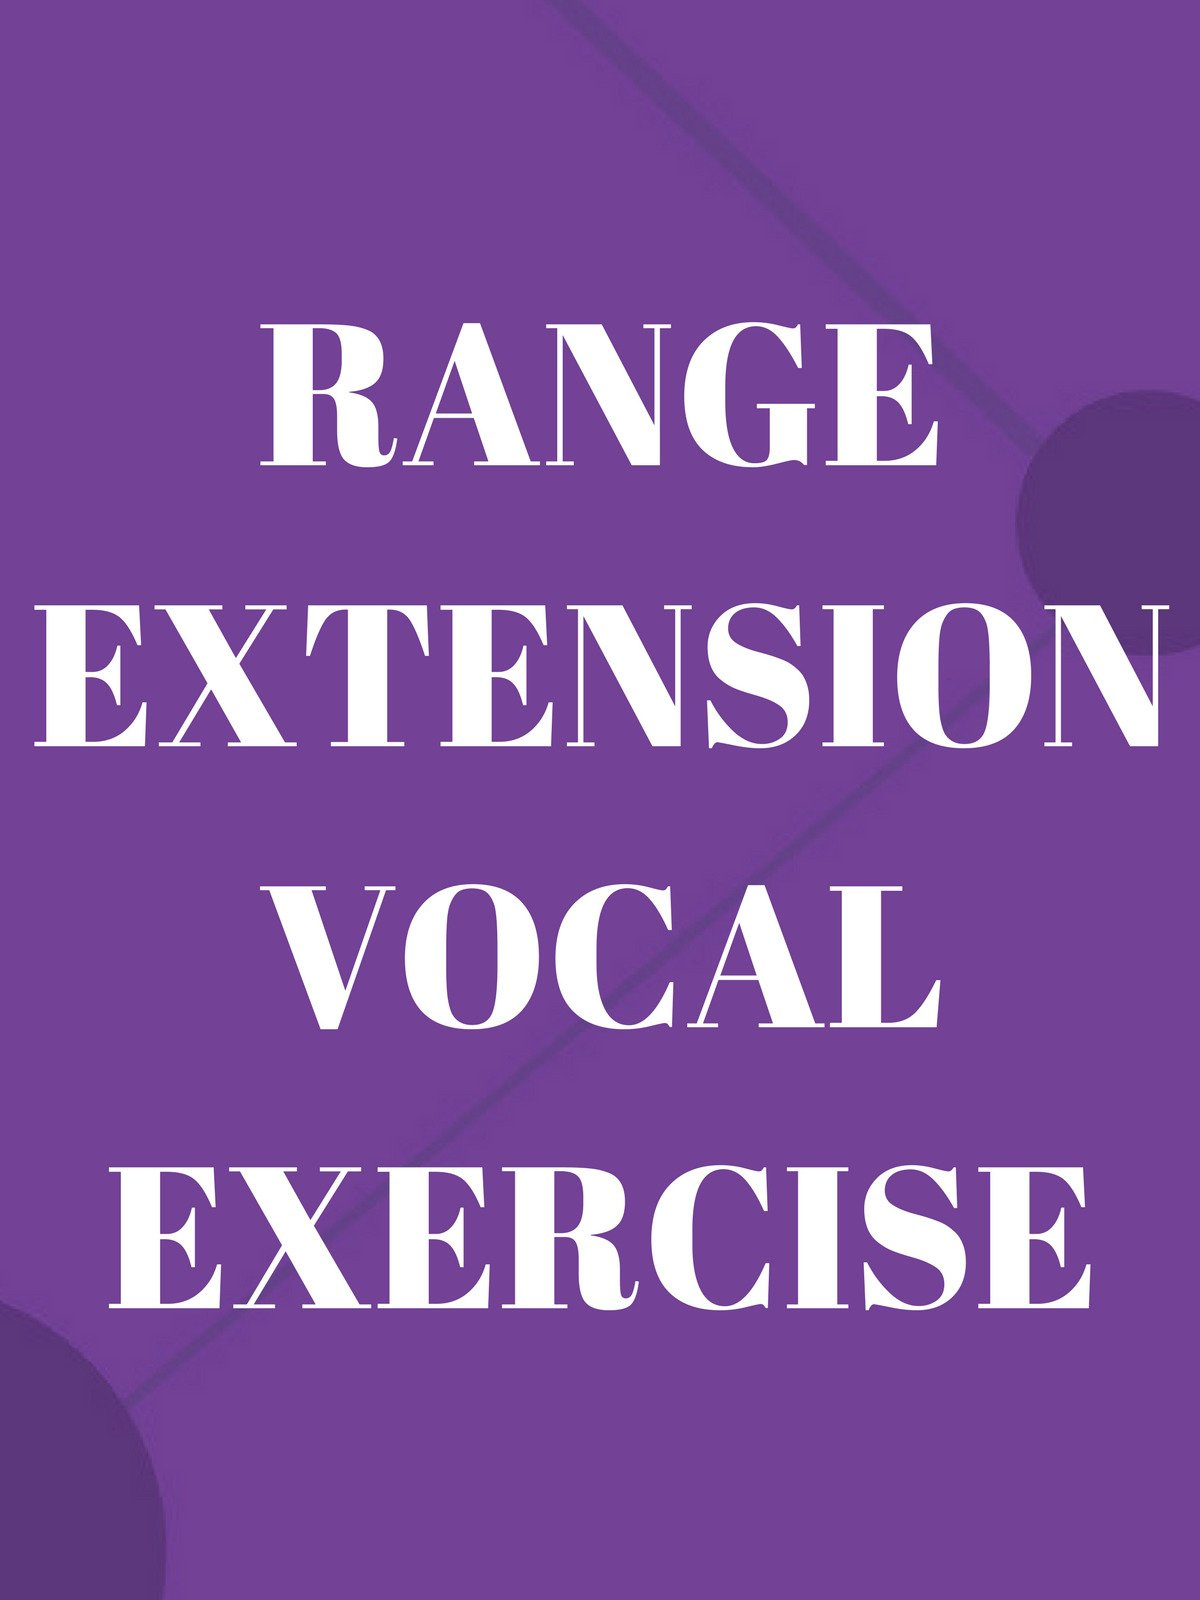 Range Extension Vocal Exercise